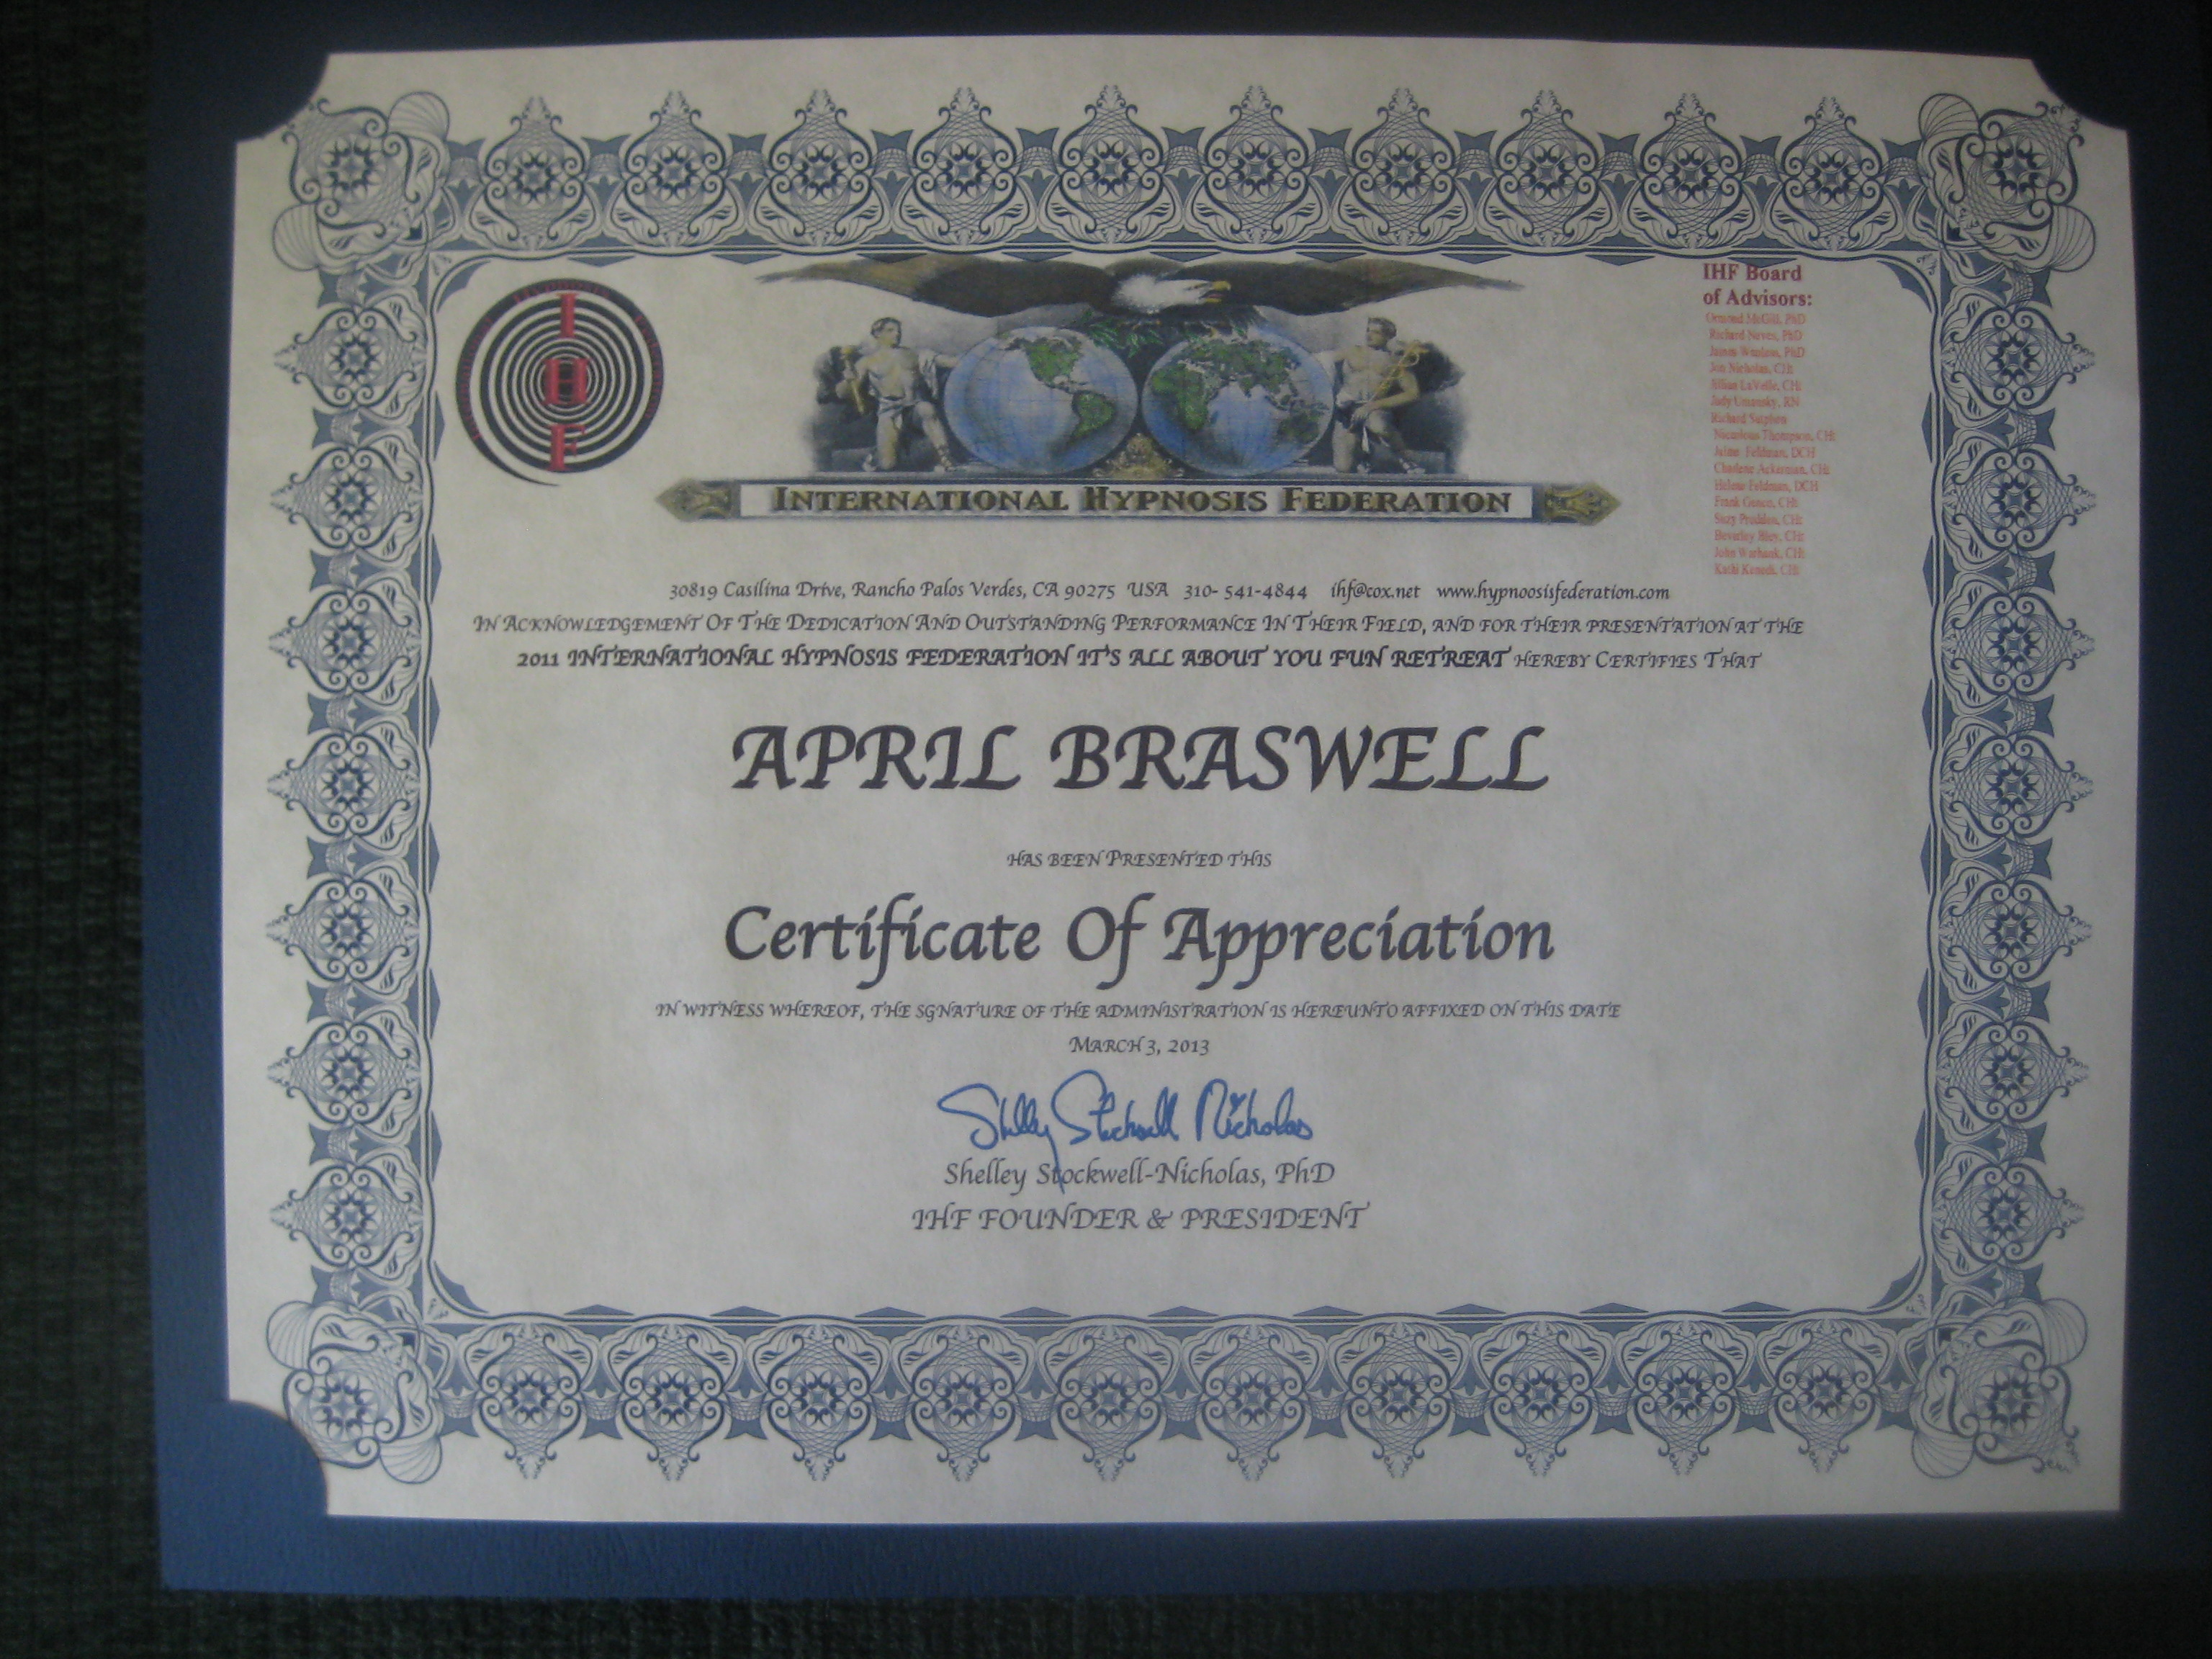 IHF certificate of hypnosis appreciation